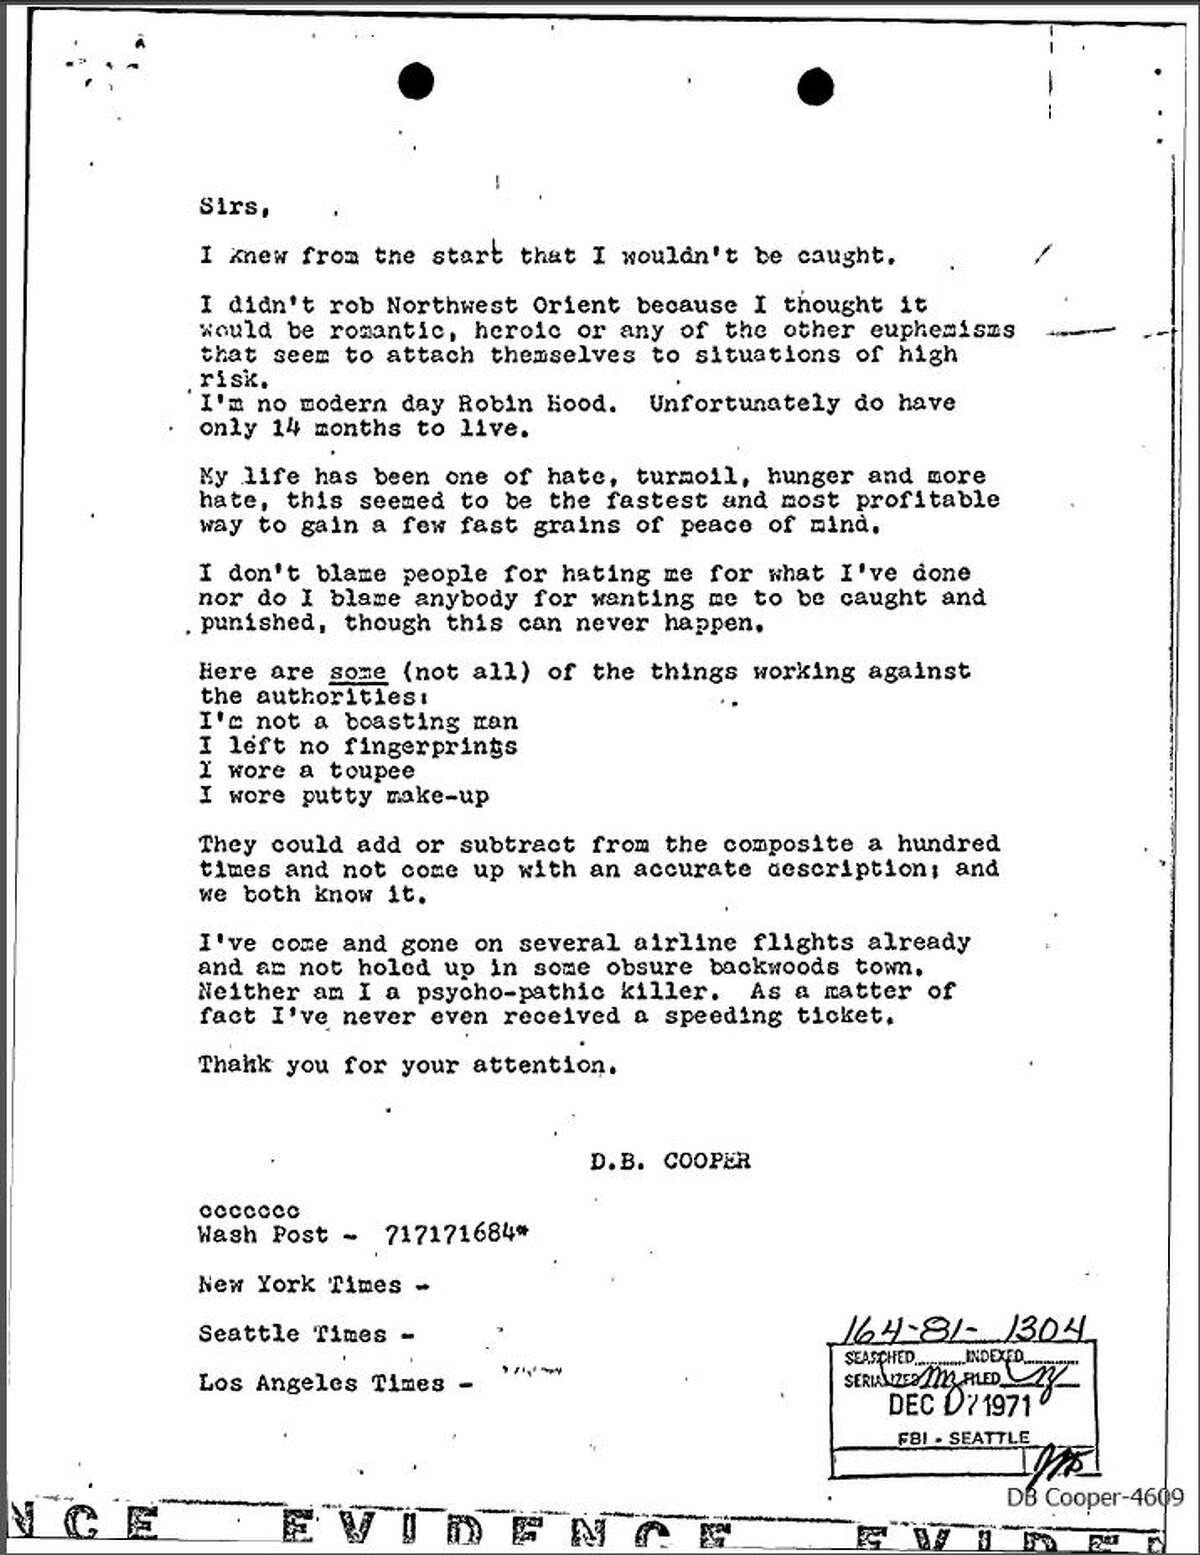 This letter, the fifth letter allegedly sent by D.B. Cooper to newspapers in the days following the Nov. 24, 1971 hijacking, was recently released by the FBI through a FOIA suit, and a Cooper investigator thinks the letter demonstrates a cover-up, and numbers at the bottom of the letter are a code that points to Tom Colbert's prime suspect, Colbert says.